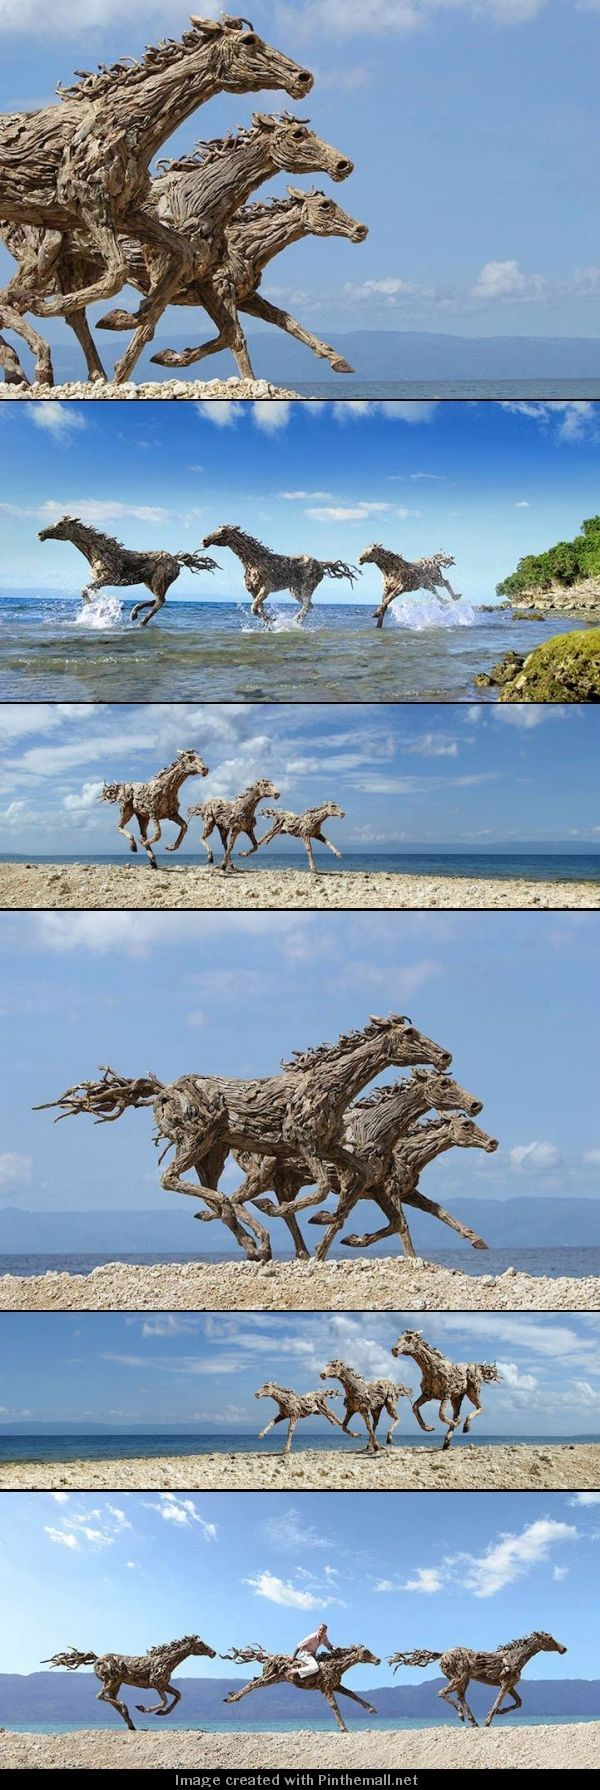 British Born James Doran Webb Created These Incredible Life Size Horses Out Of Salvaged Driftwood A Grouped Images Sculpture Art Driftwood Art Horse Art